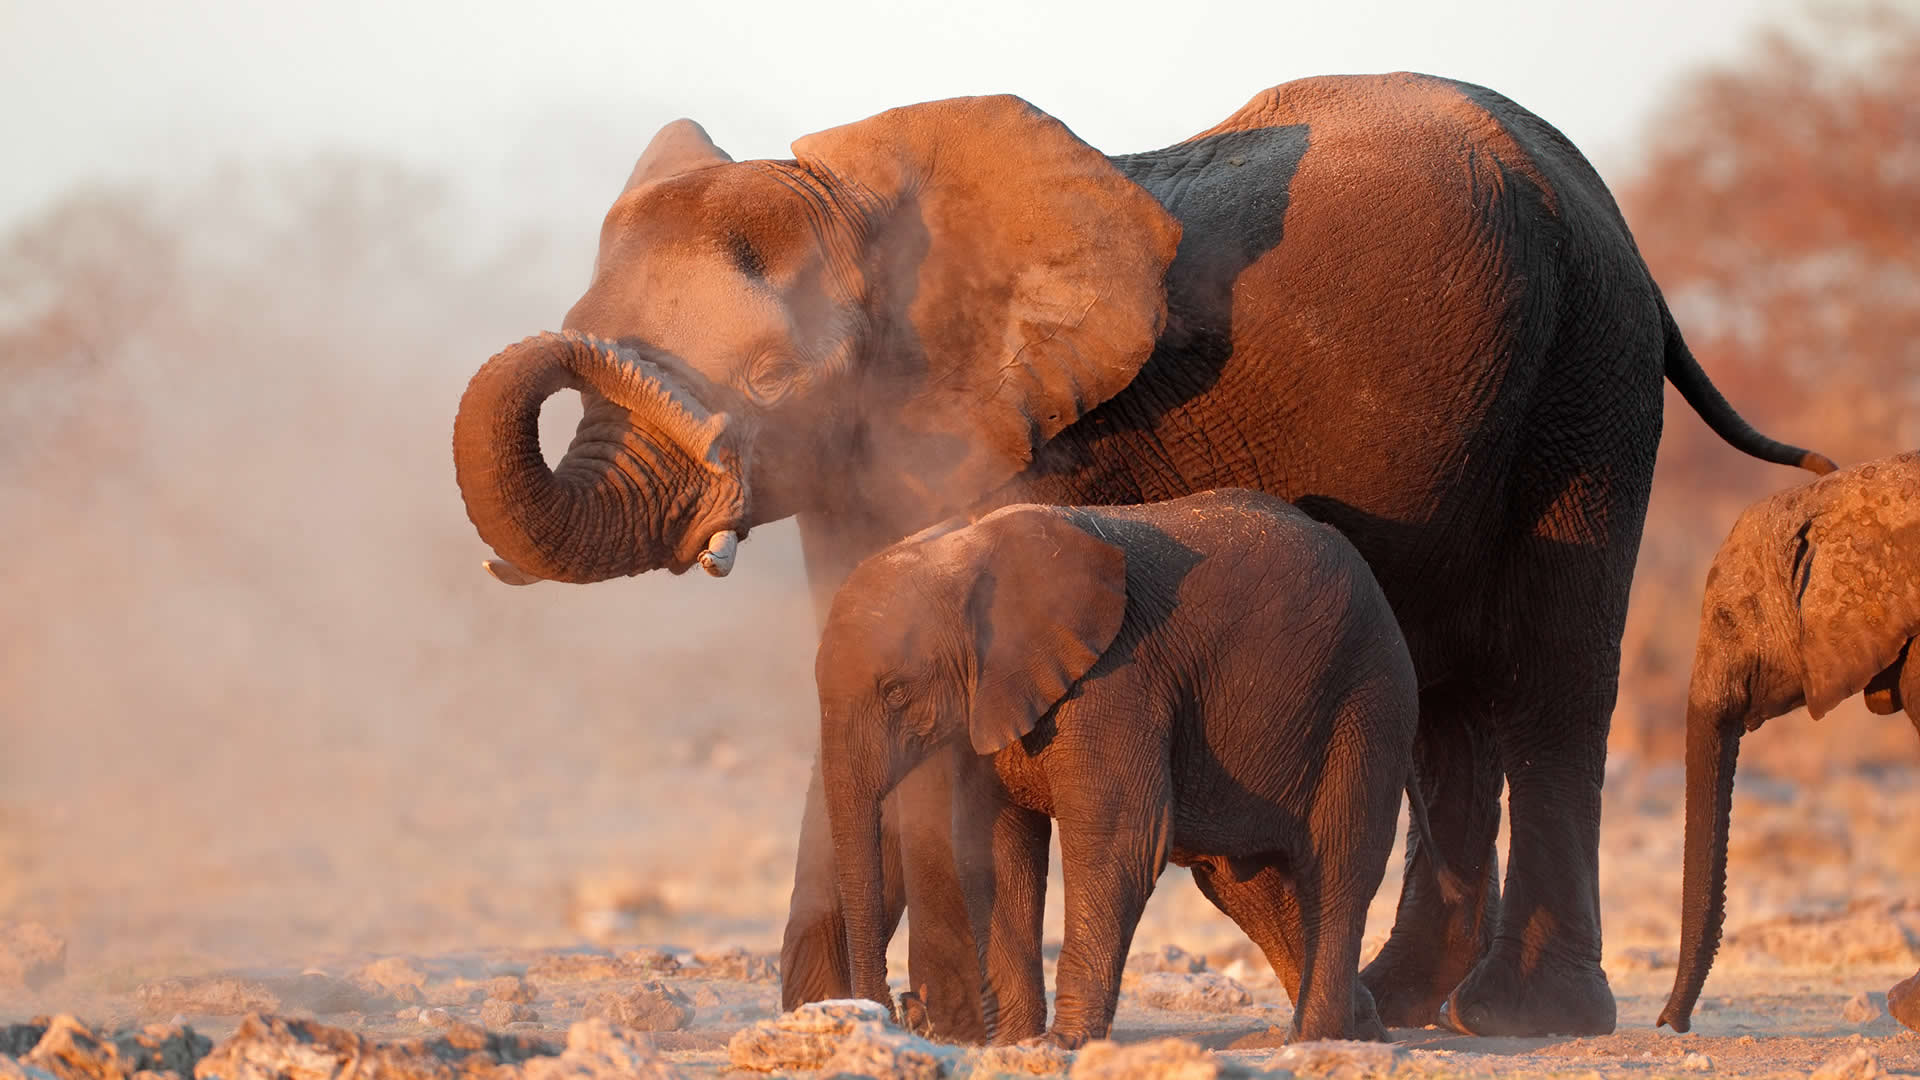 An elephant and her baby in Namibia